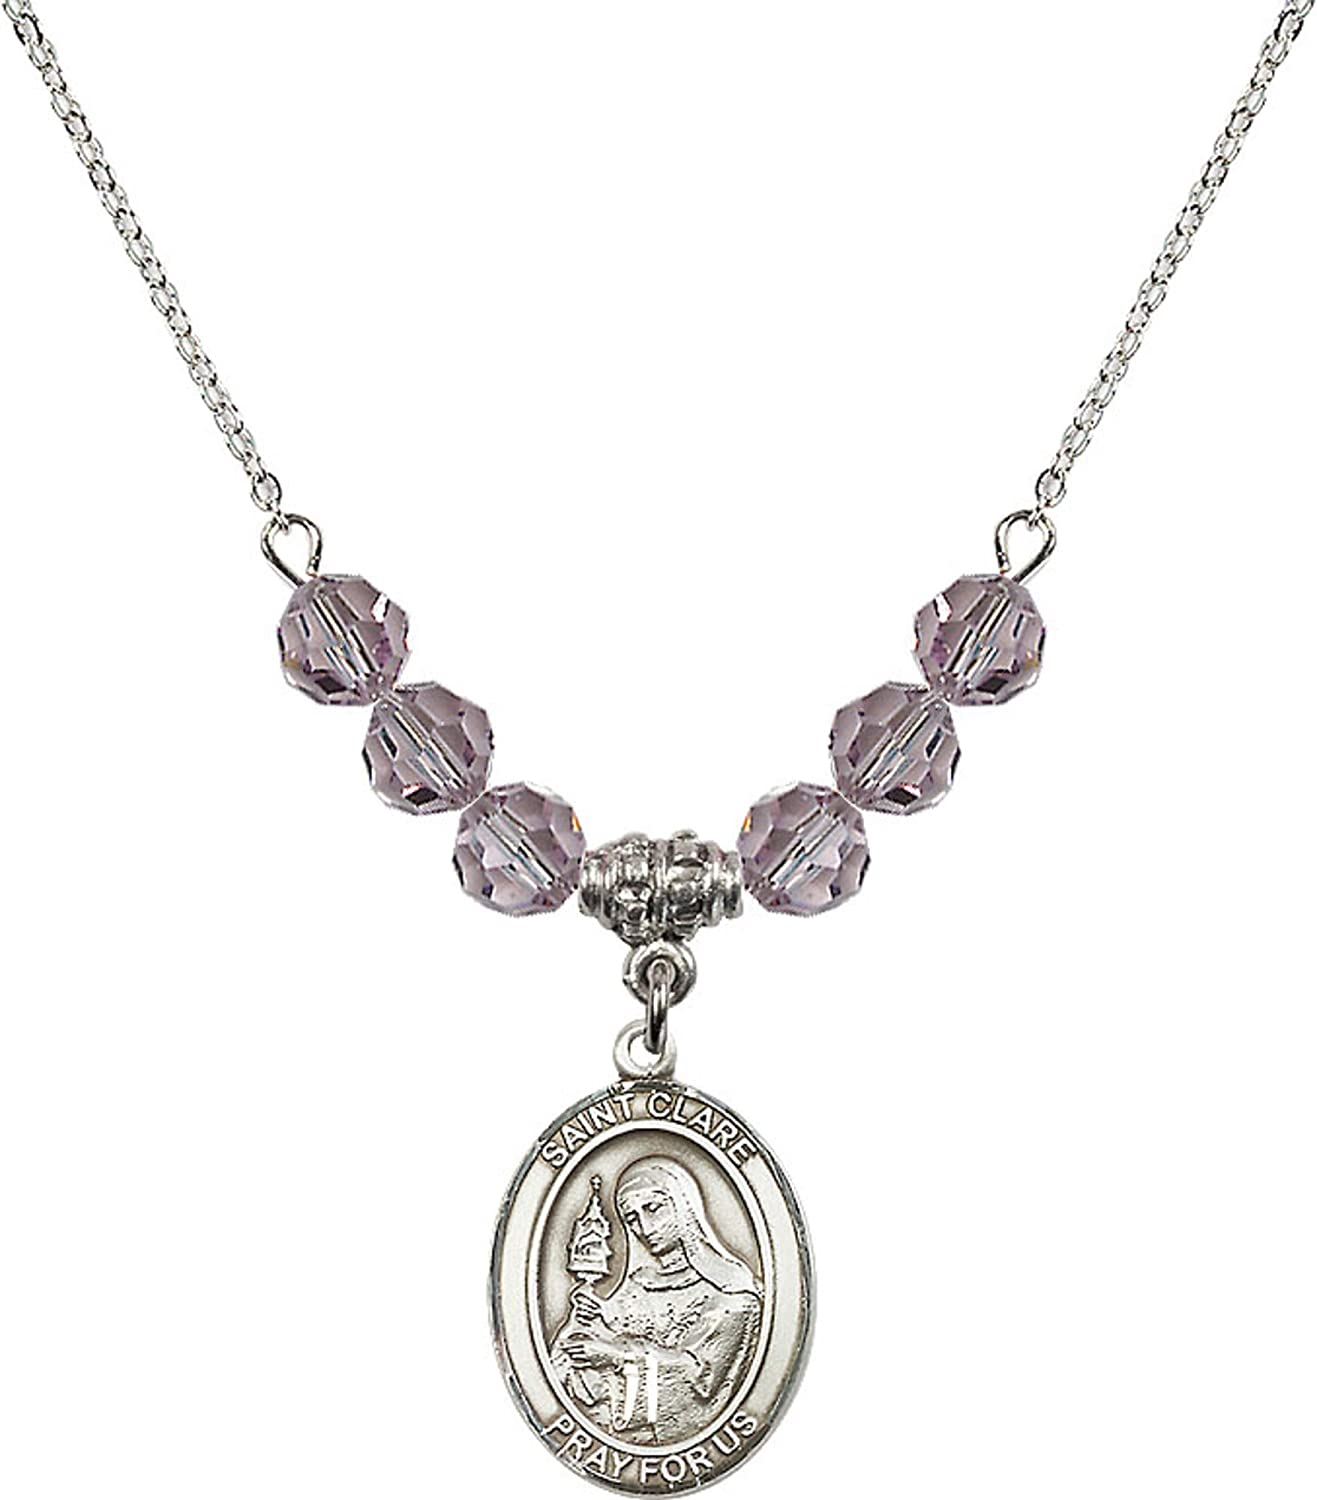 Bonyak Jewelry 18 Inch Rhodium Plated Necklace w// 6mm Light Purple February Birth Month Stone Beads and Saint Clare of Assisi Charm